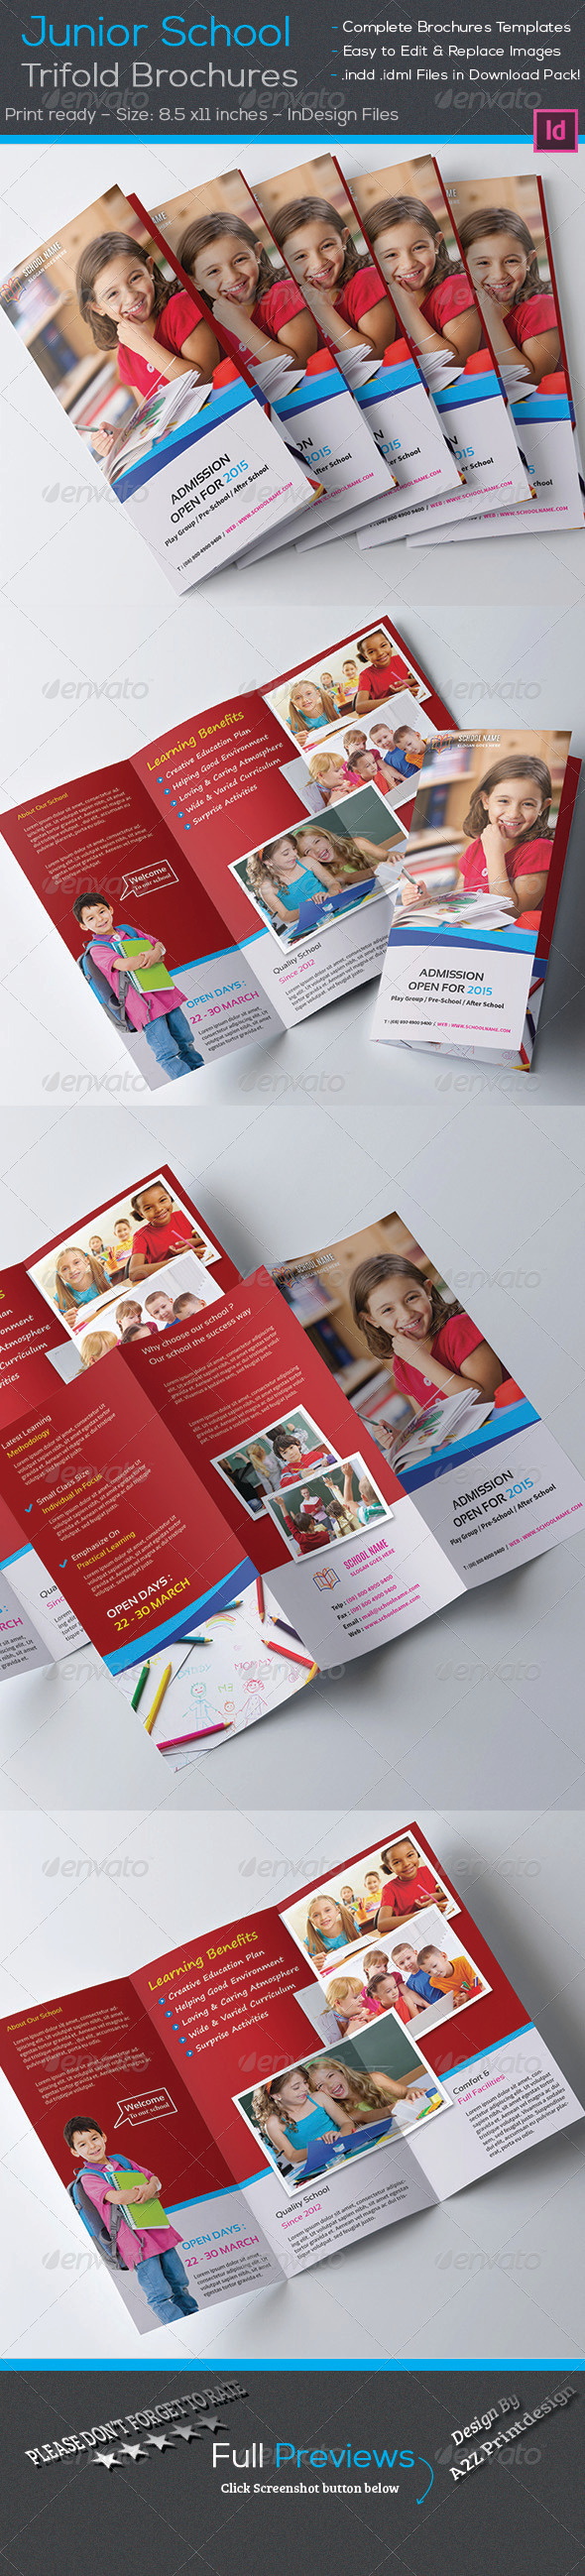 GraphicRiver Junior School Trifold Brochures 7867800